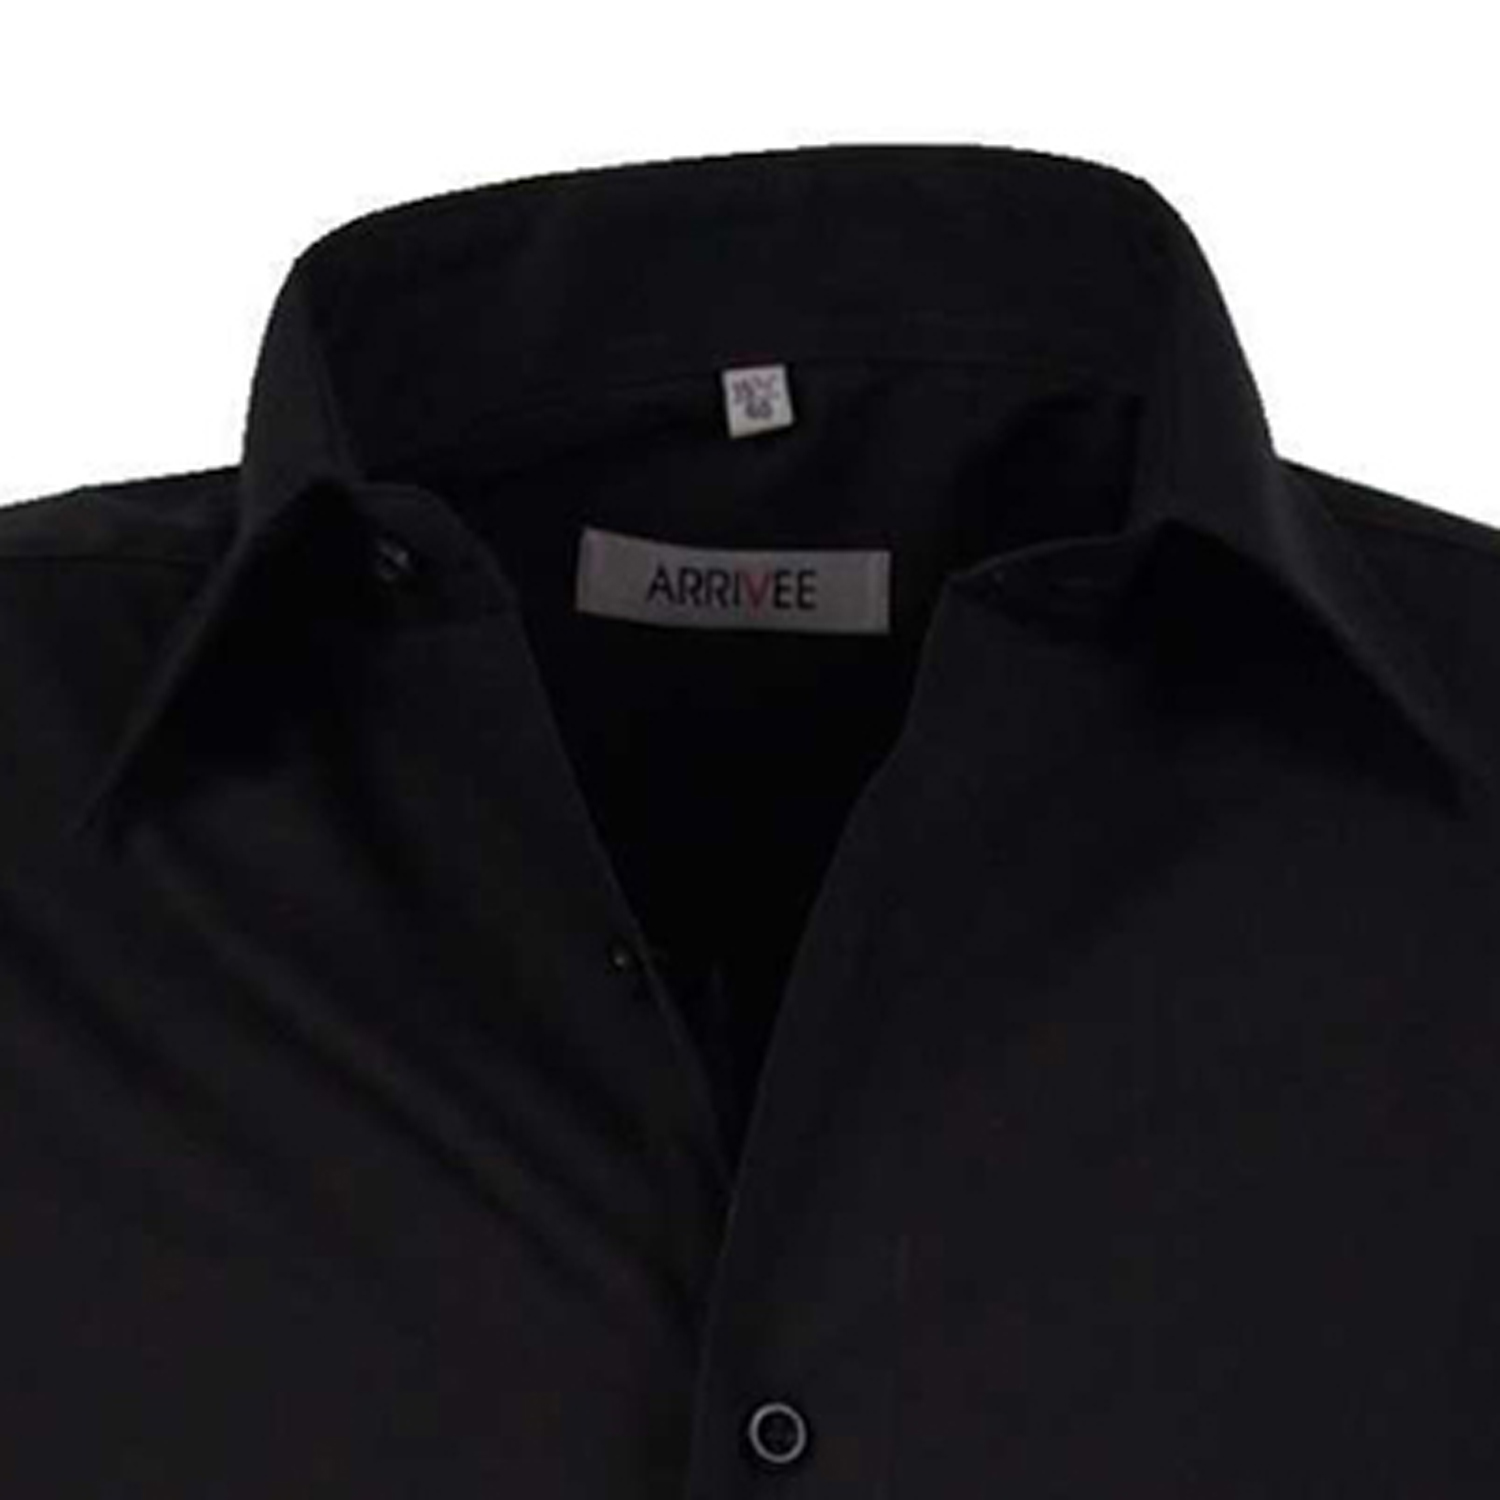 Detail Image to Black shirt by ARRIVEE in oversizes up to 6XL